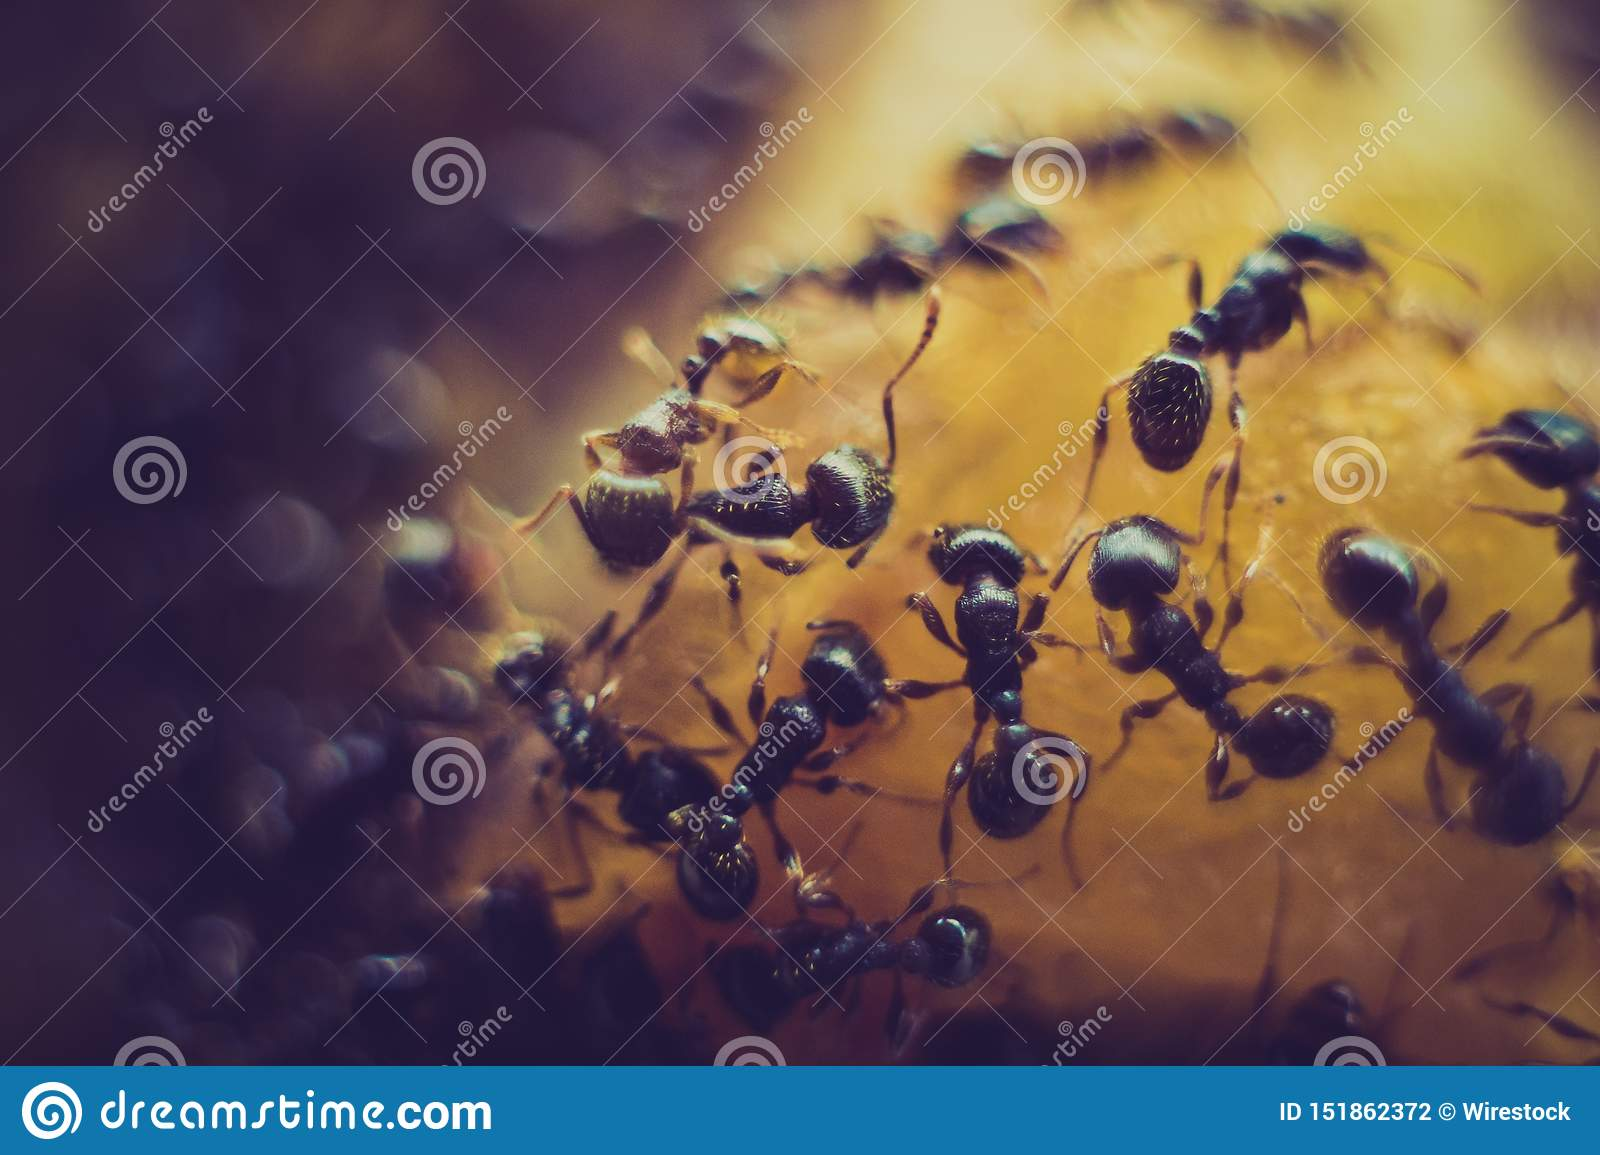 Extreme closeup of an ant colony on a bright orange surface